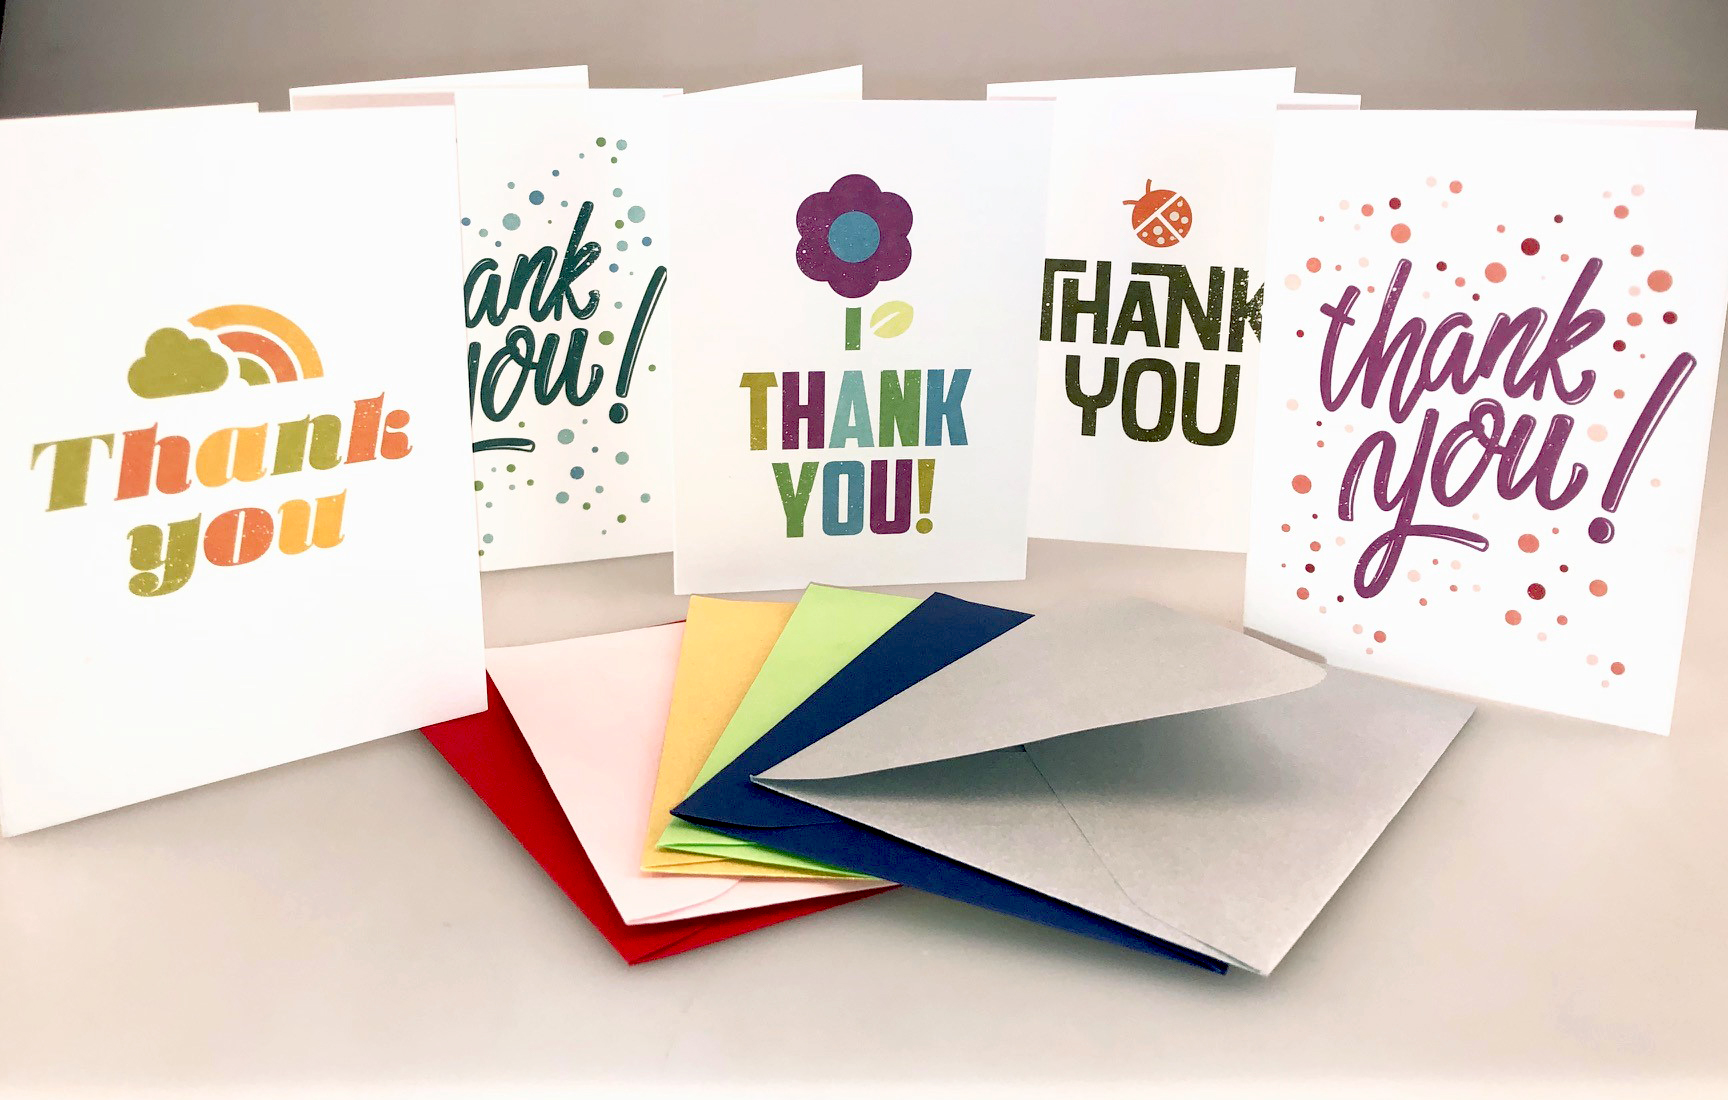 A Million Thanks! Photo courtesy of Leader Paper Products.